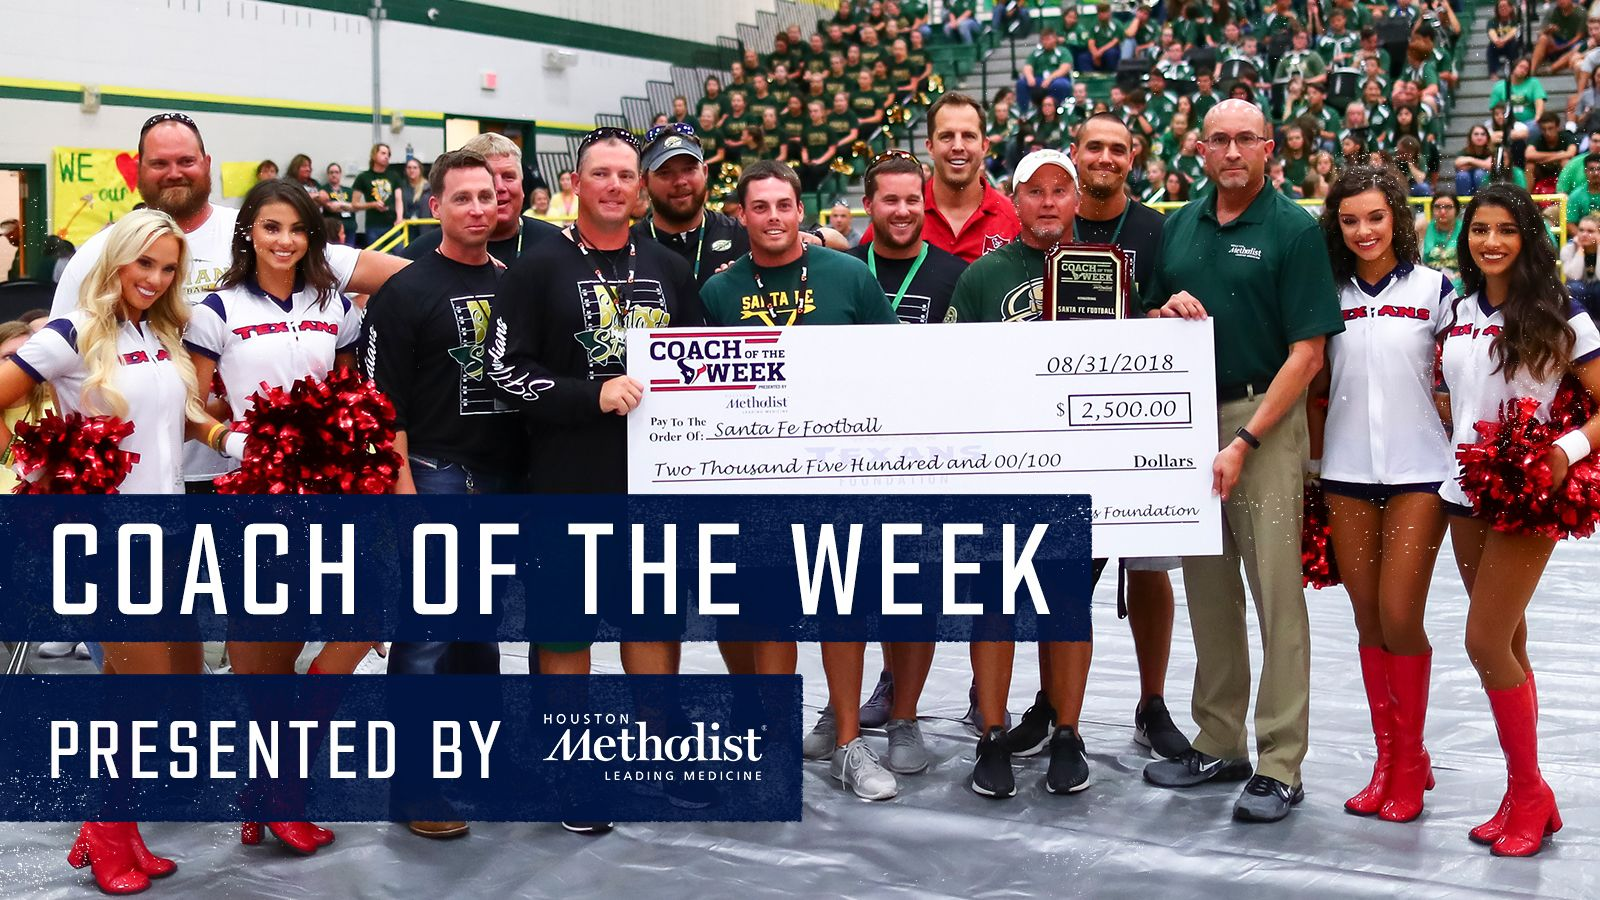 Coach of the Week presented by Houston Methodist